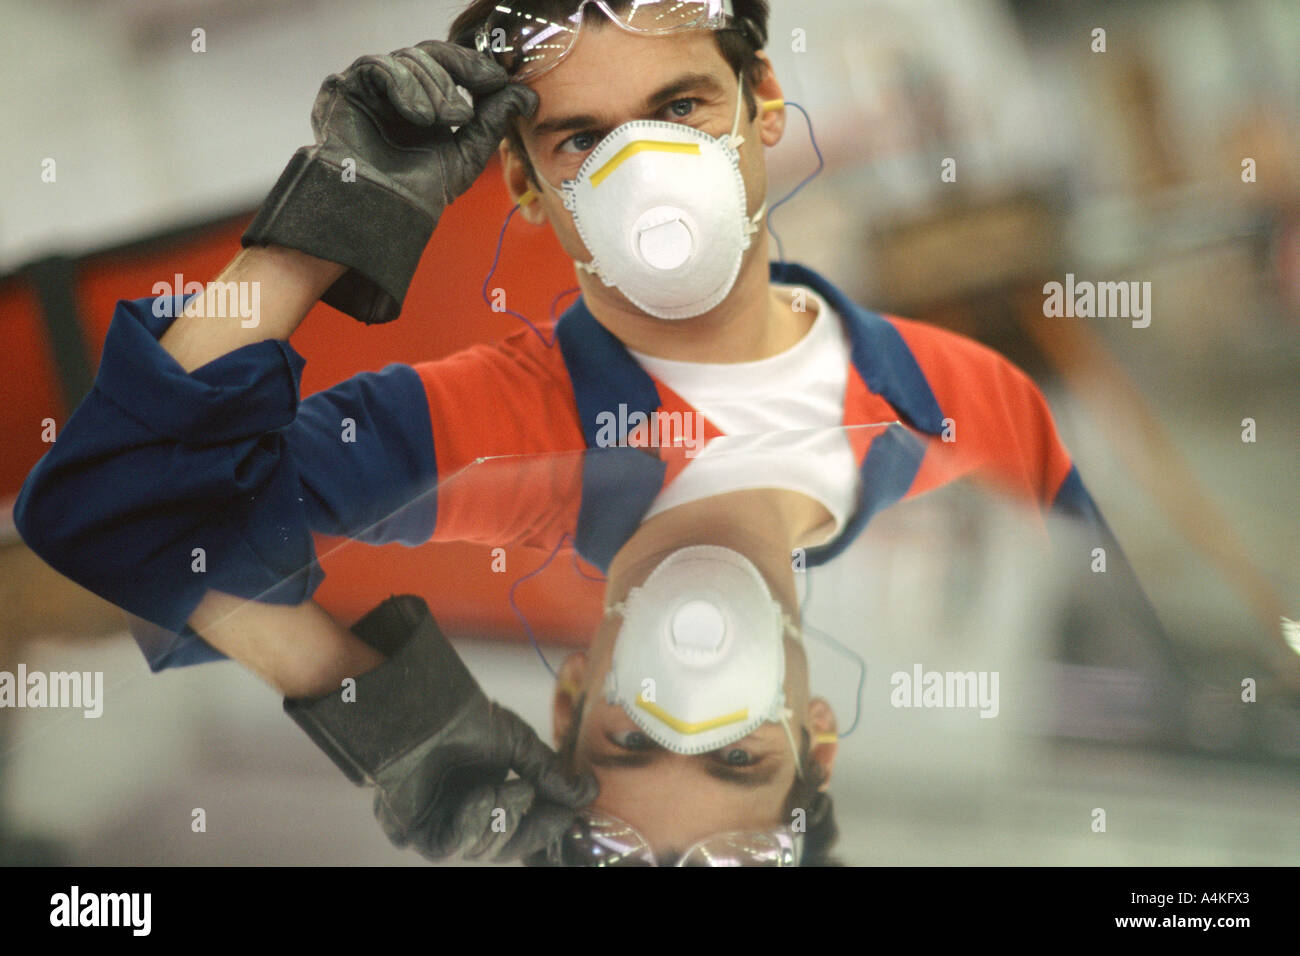 Manual worker wearing protective gear - Stock Image